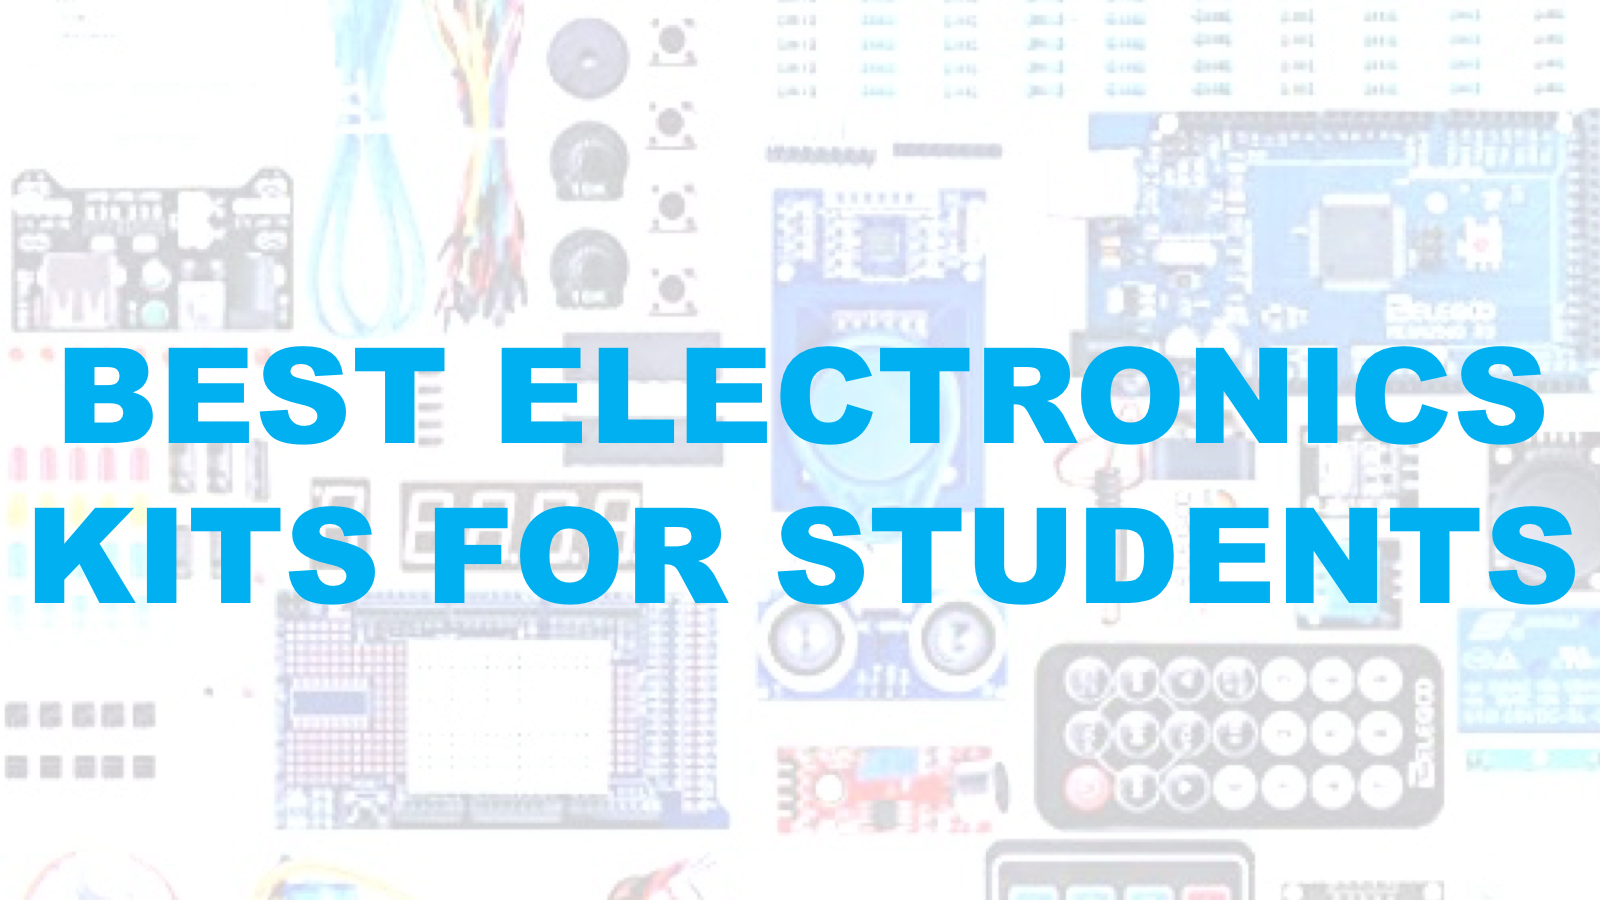 Best Electronics Kit for Students